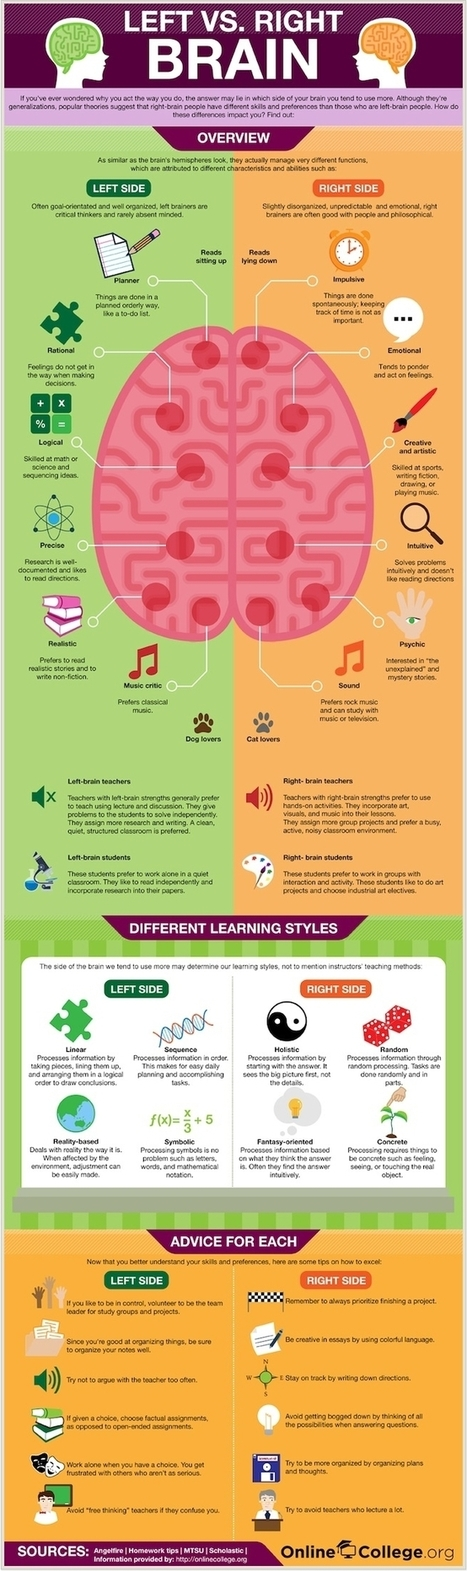 Left Brain vs Right Brain - Strengths and Learning Styles - The Coffee Klatch | iEduc | Scoop.it